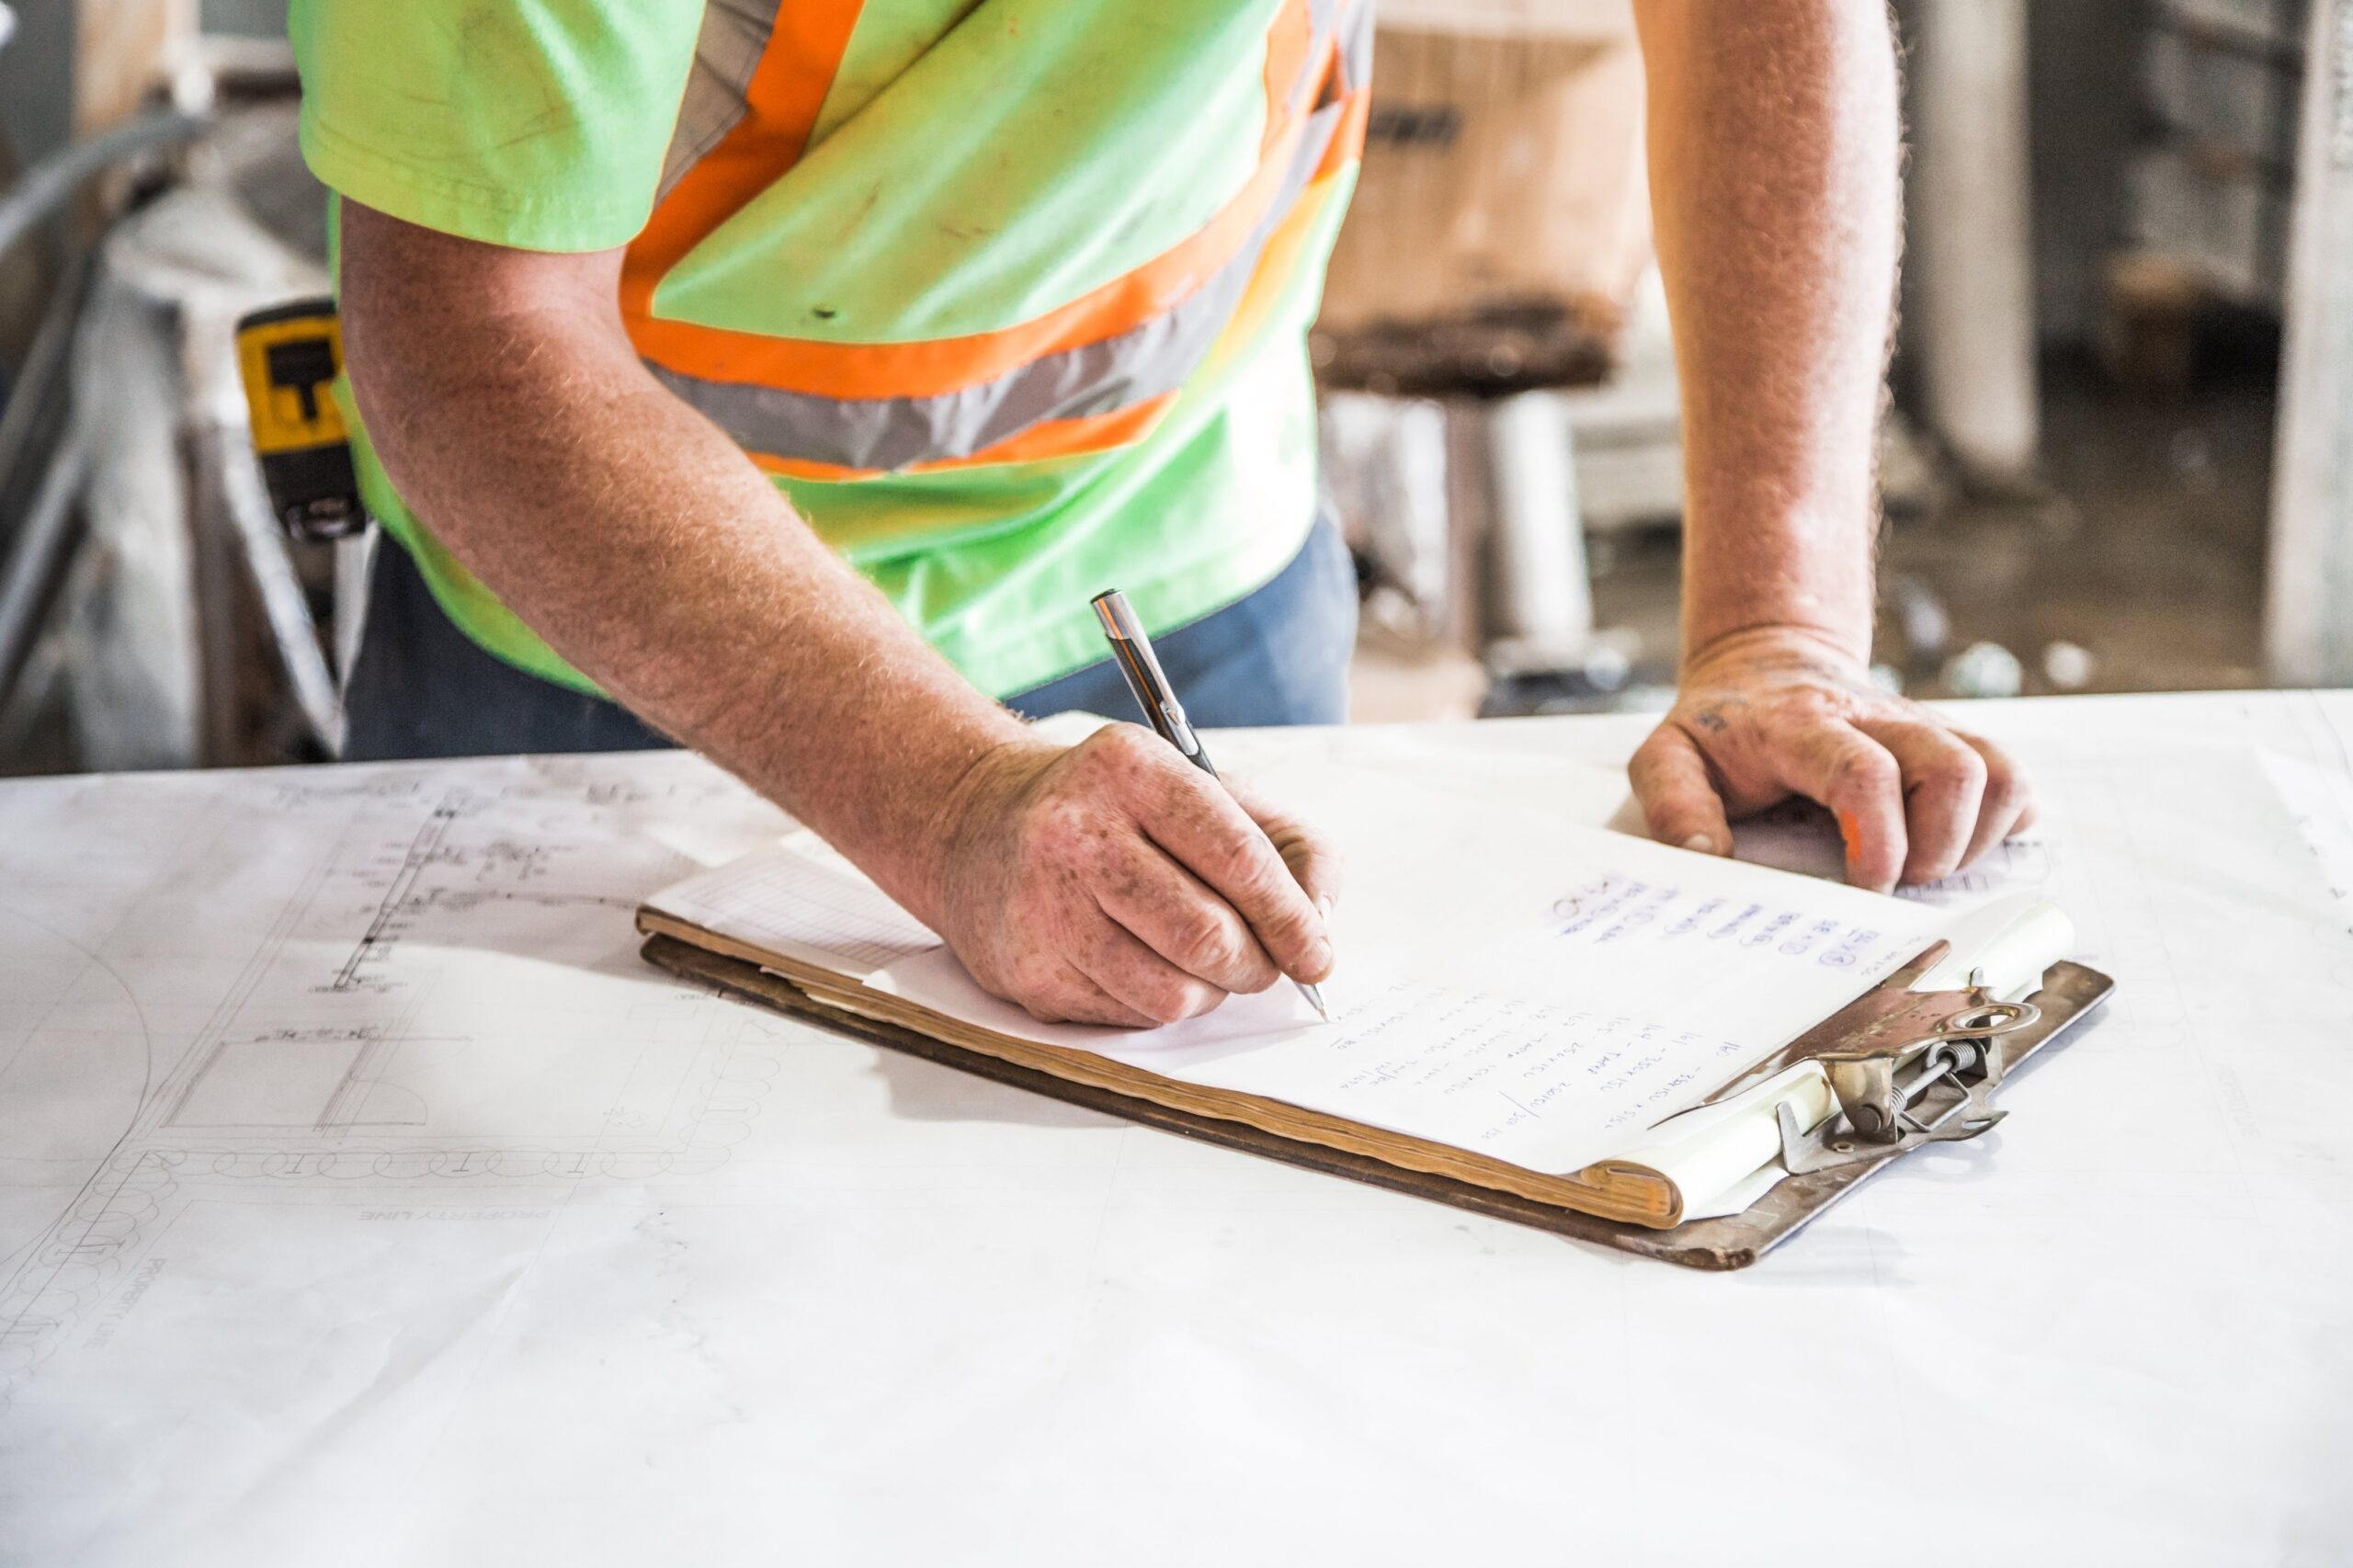 Construction employee checking a list